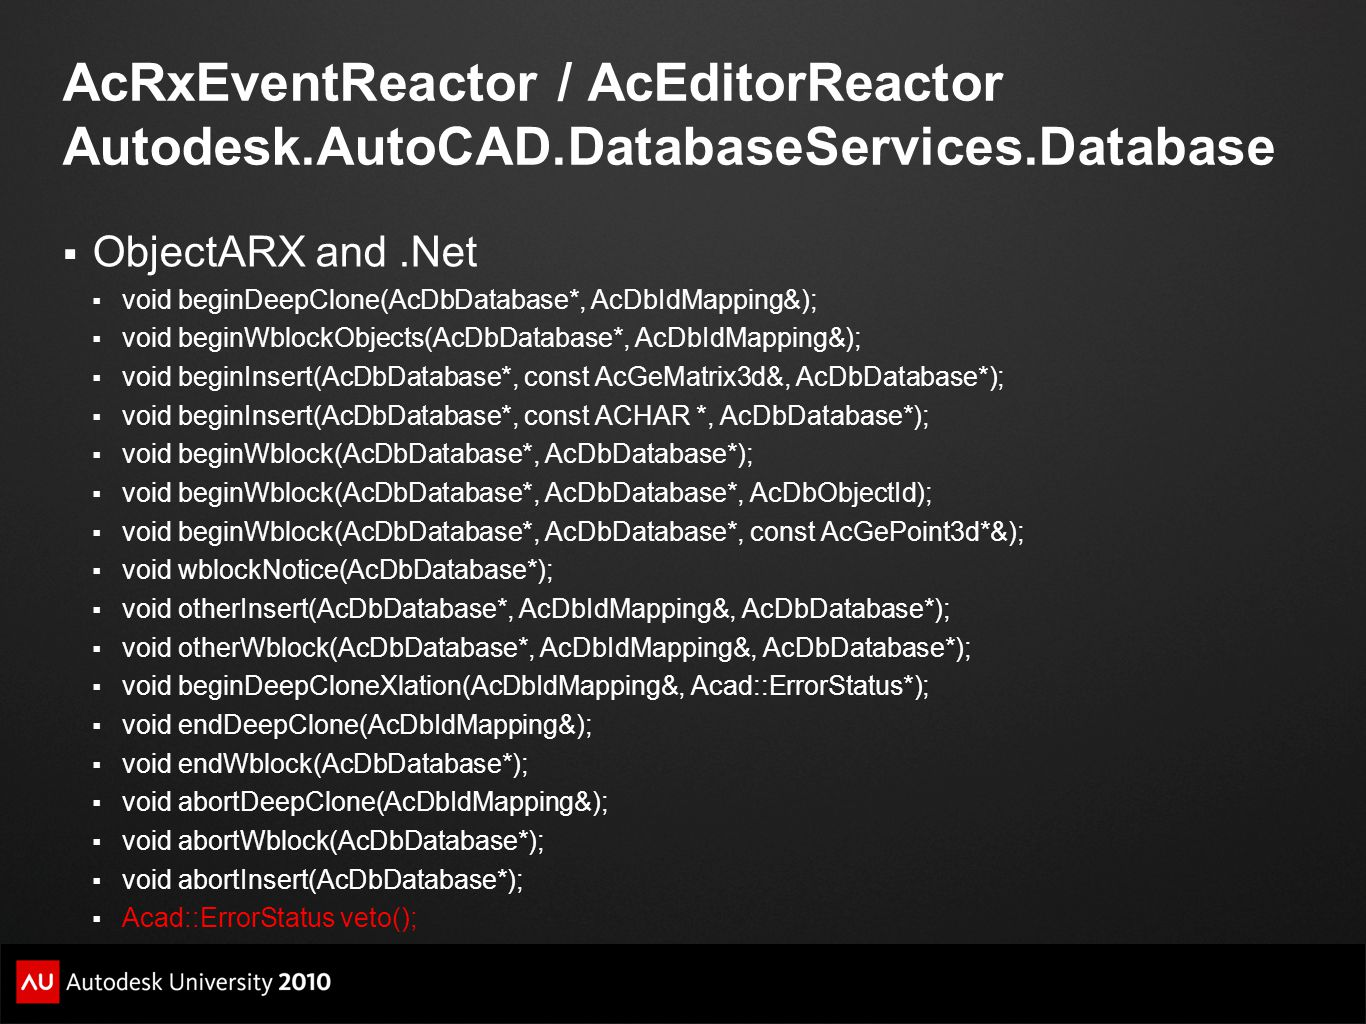 AcRxEventReactor / AcEditorReactor Autodesk. AutoCAD. DatabaseServices